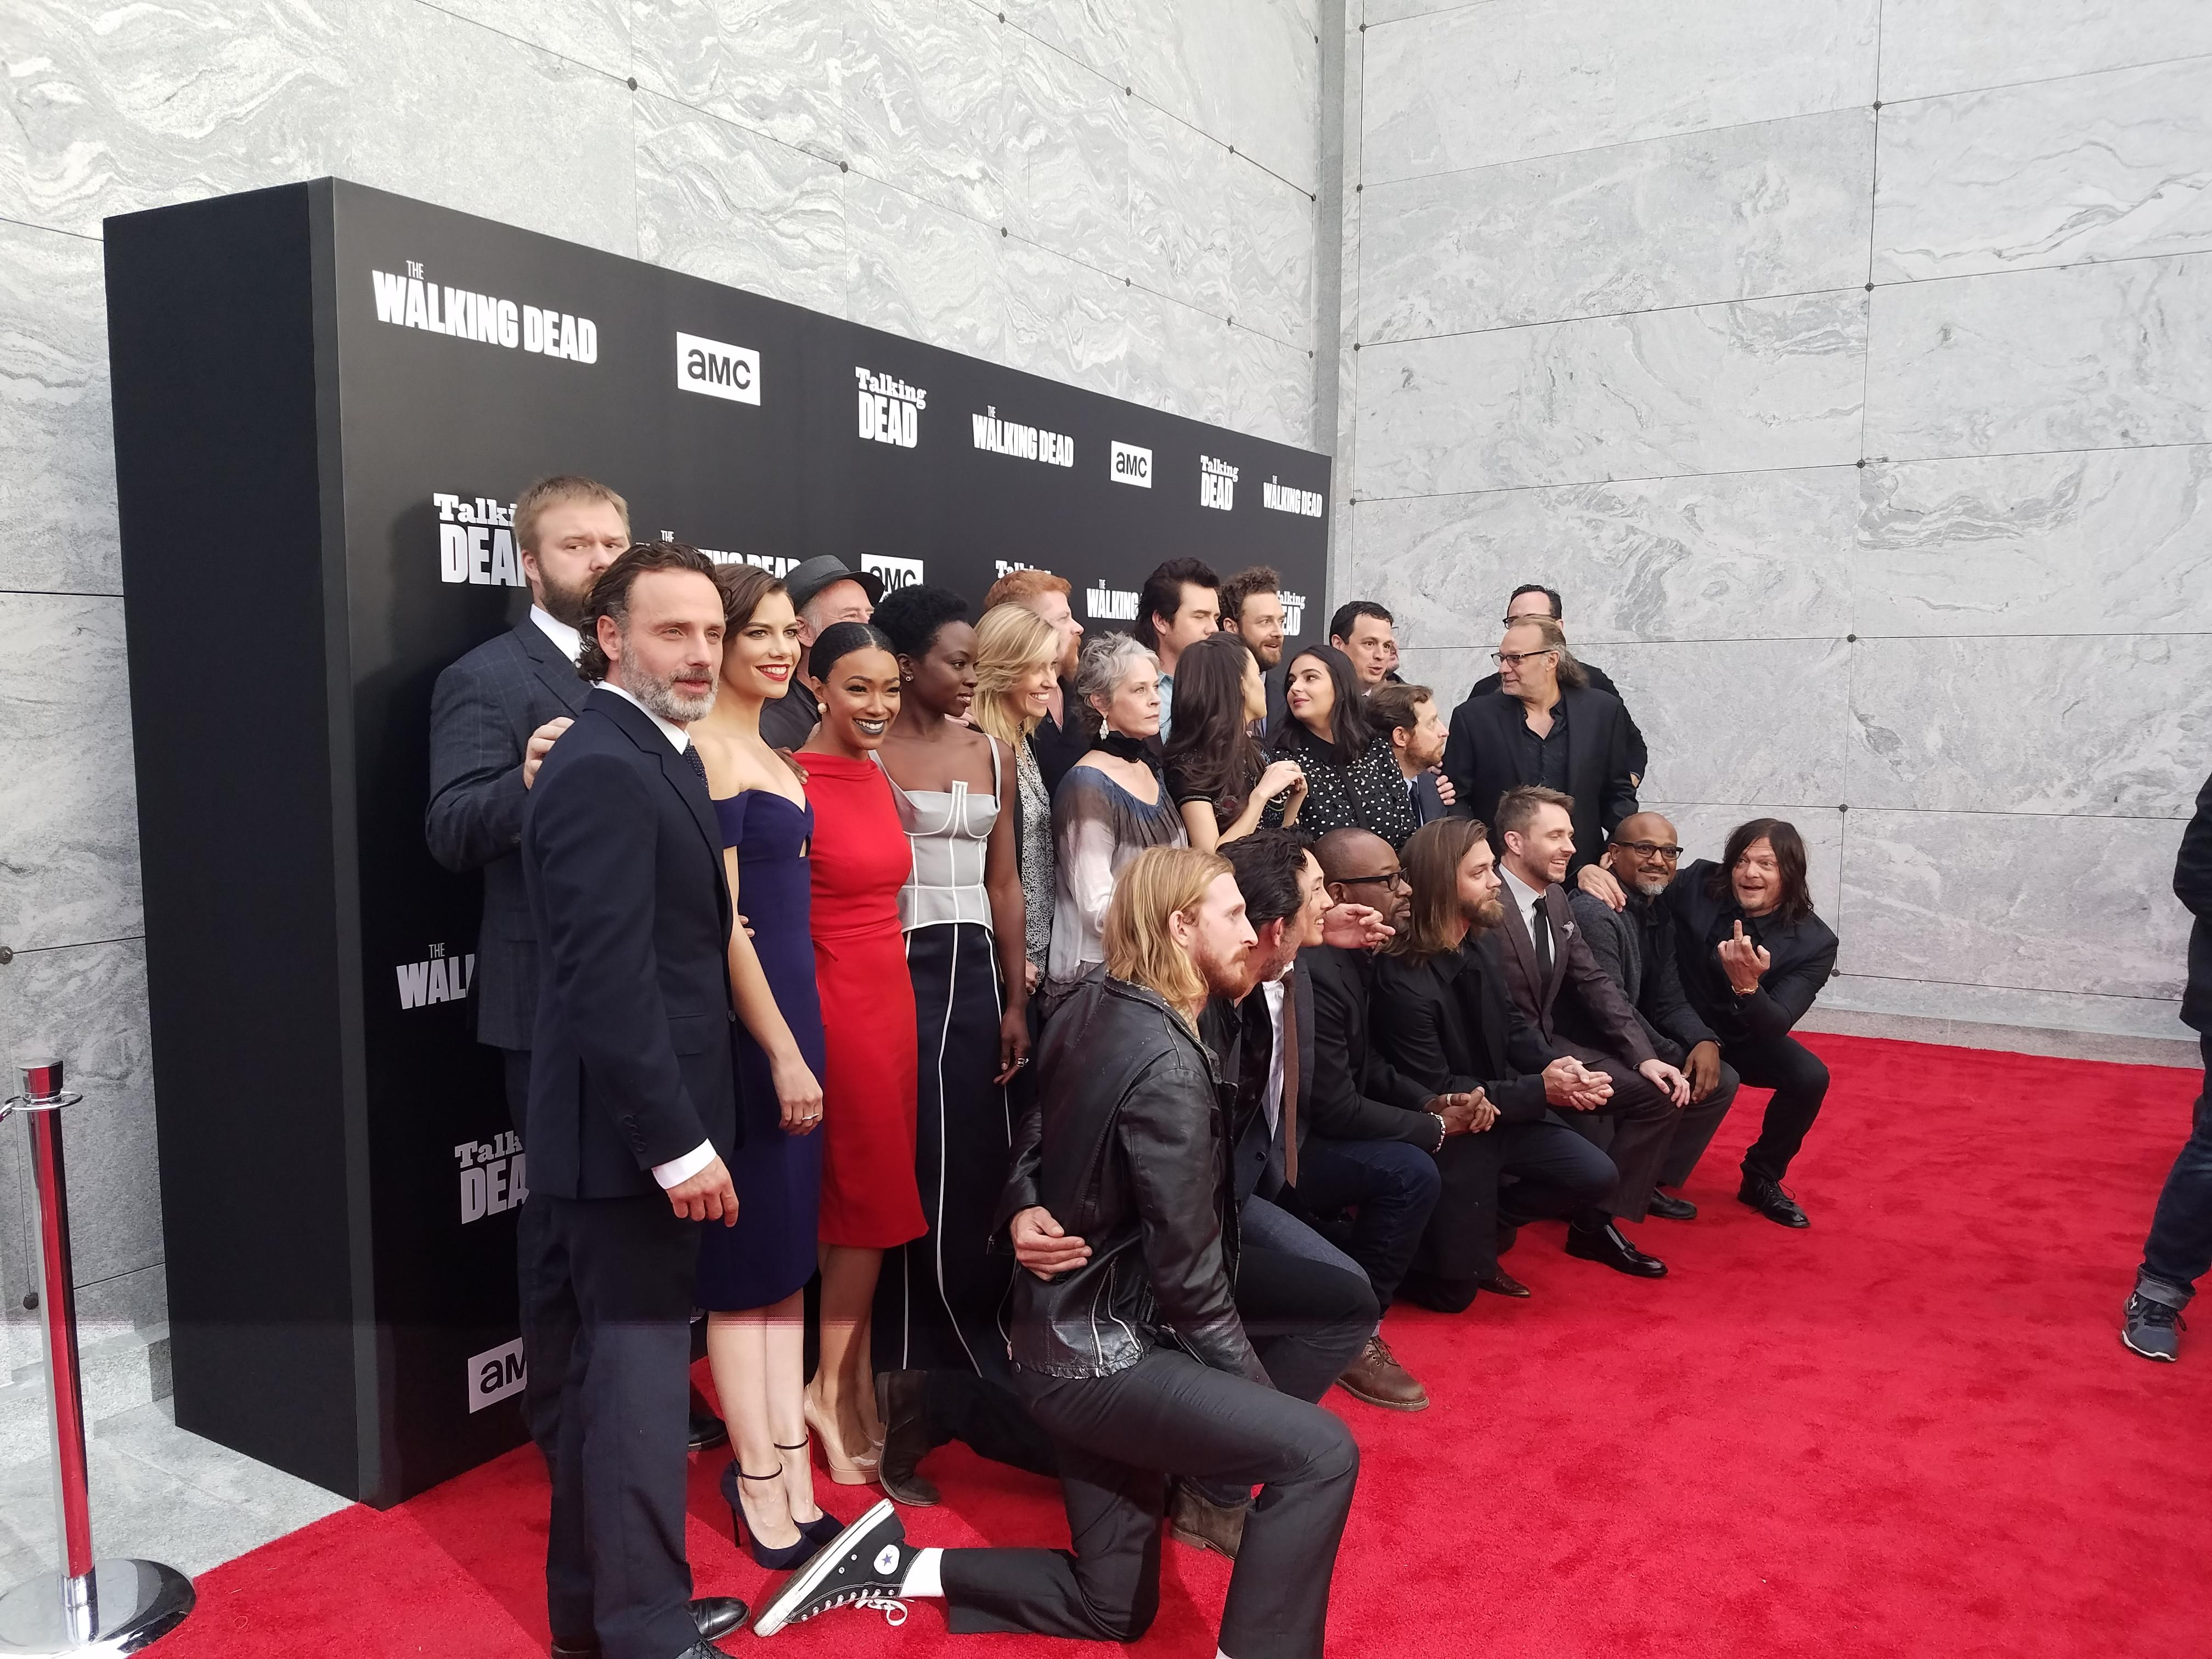 'The Talking Dead': 'Walking Dead' Cast Talk Shocking Character Deaths In Rainy Live Event